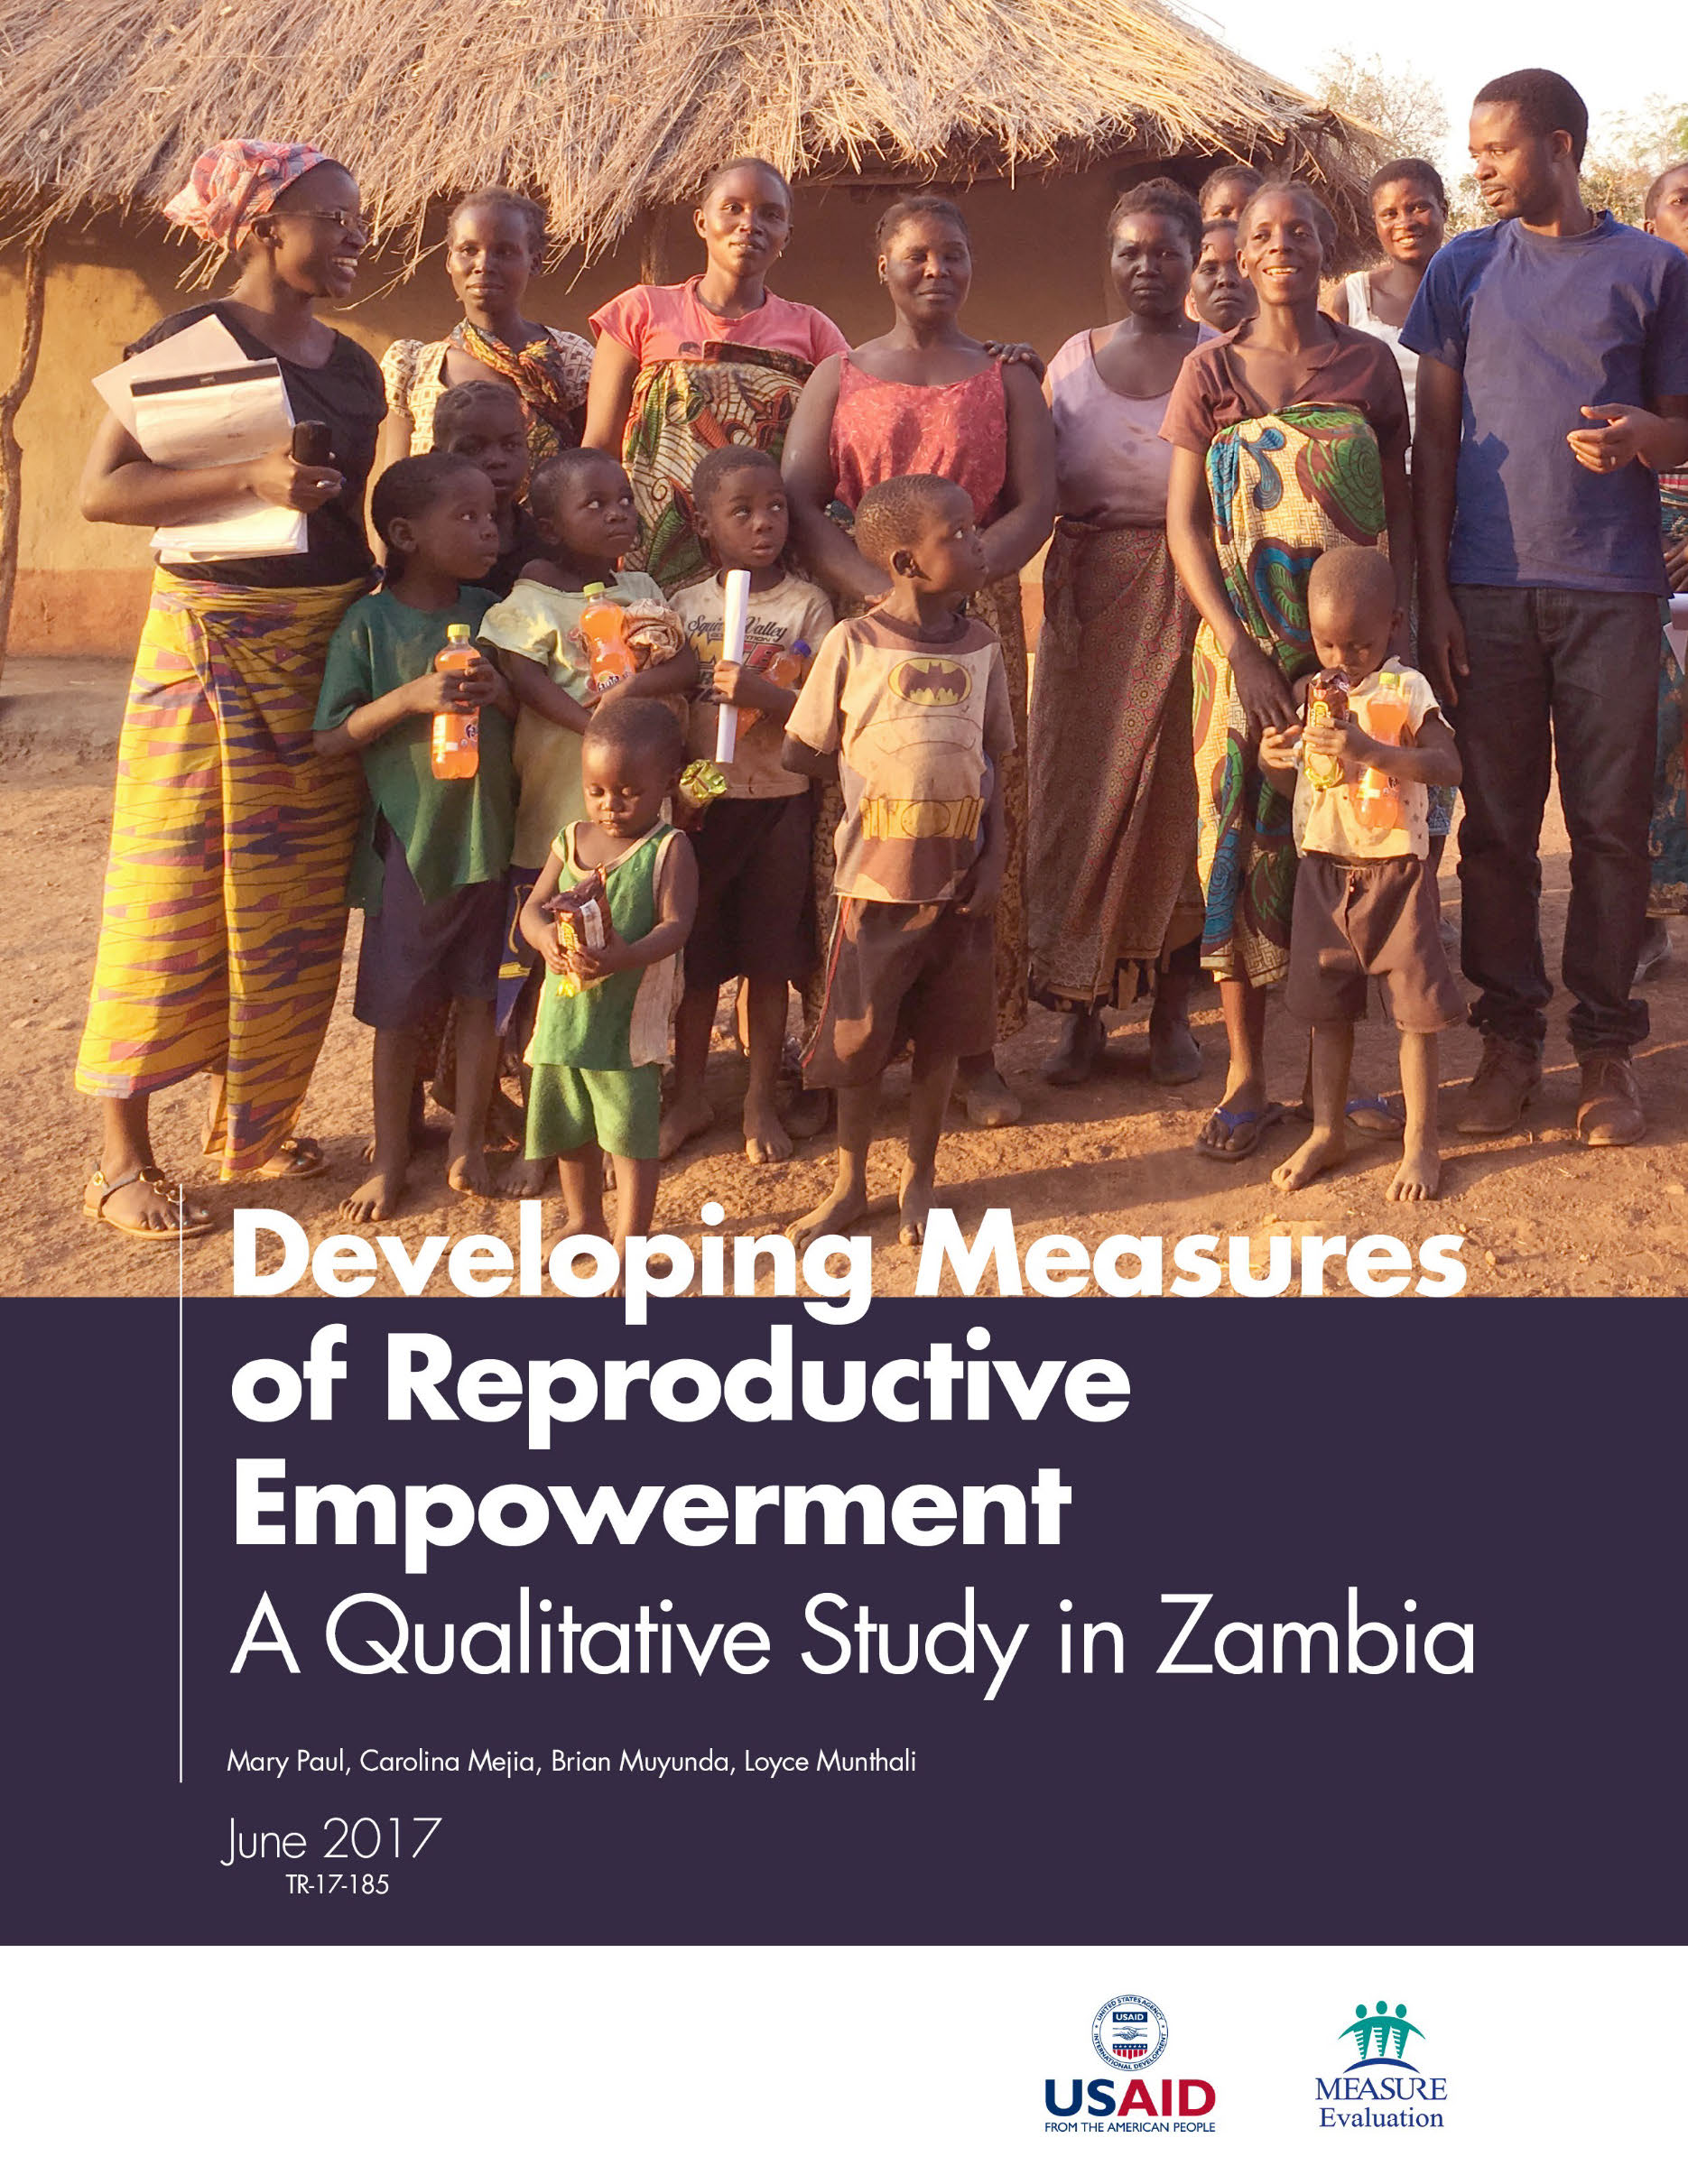 Developing Measures of Reproductive Empowerment  A Qualitative Study in Zambia